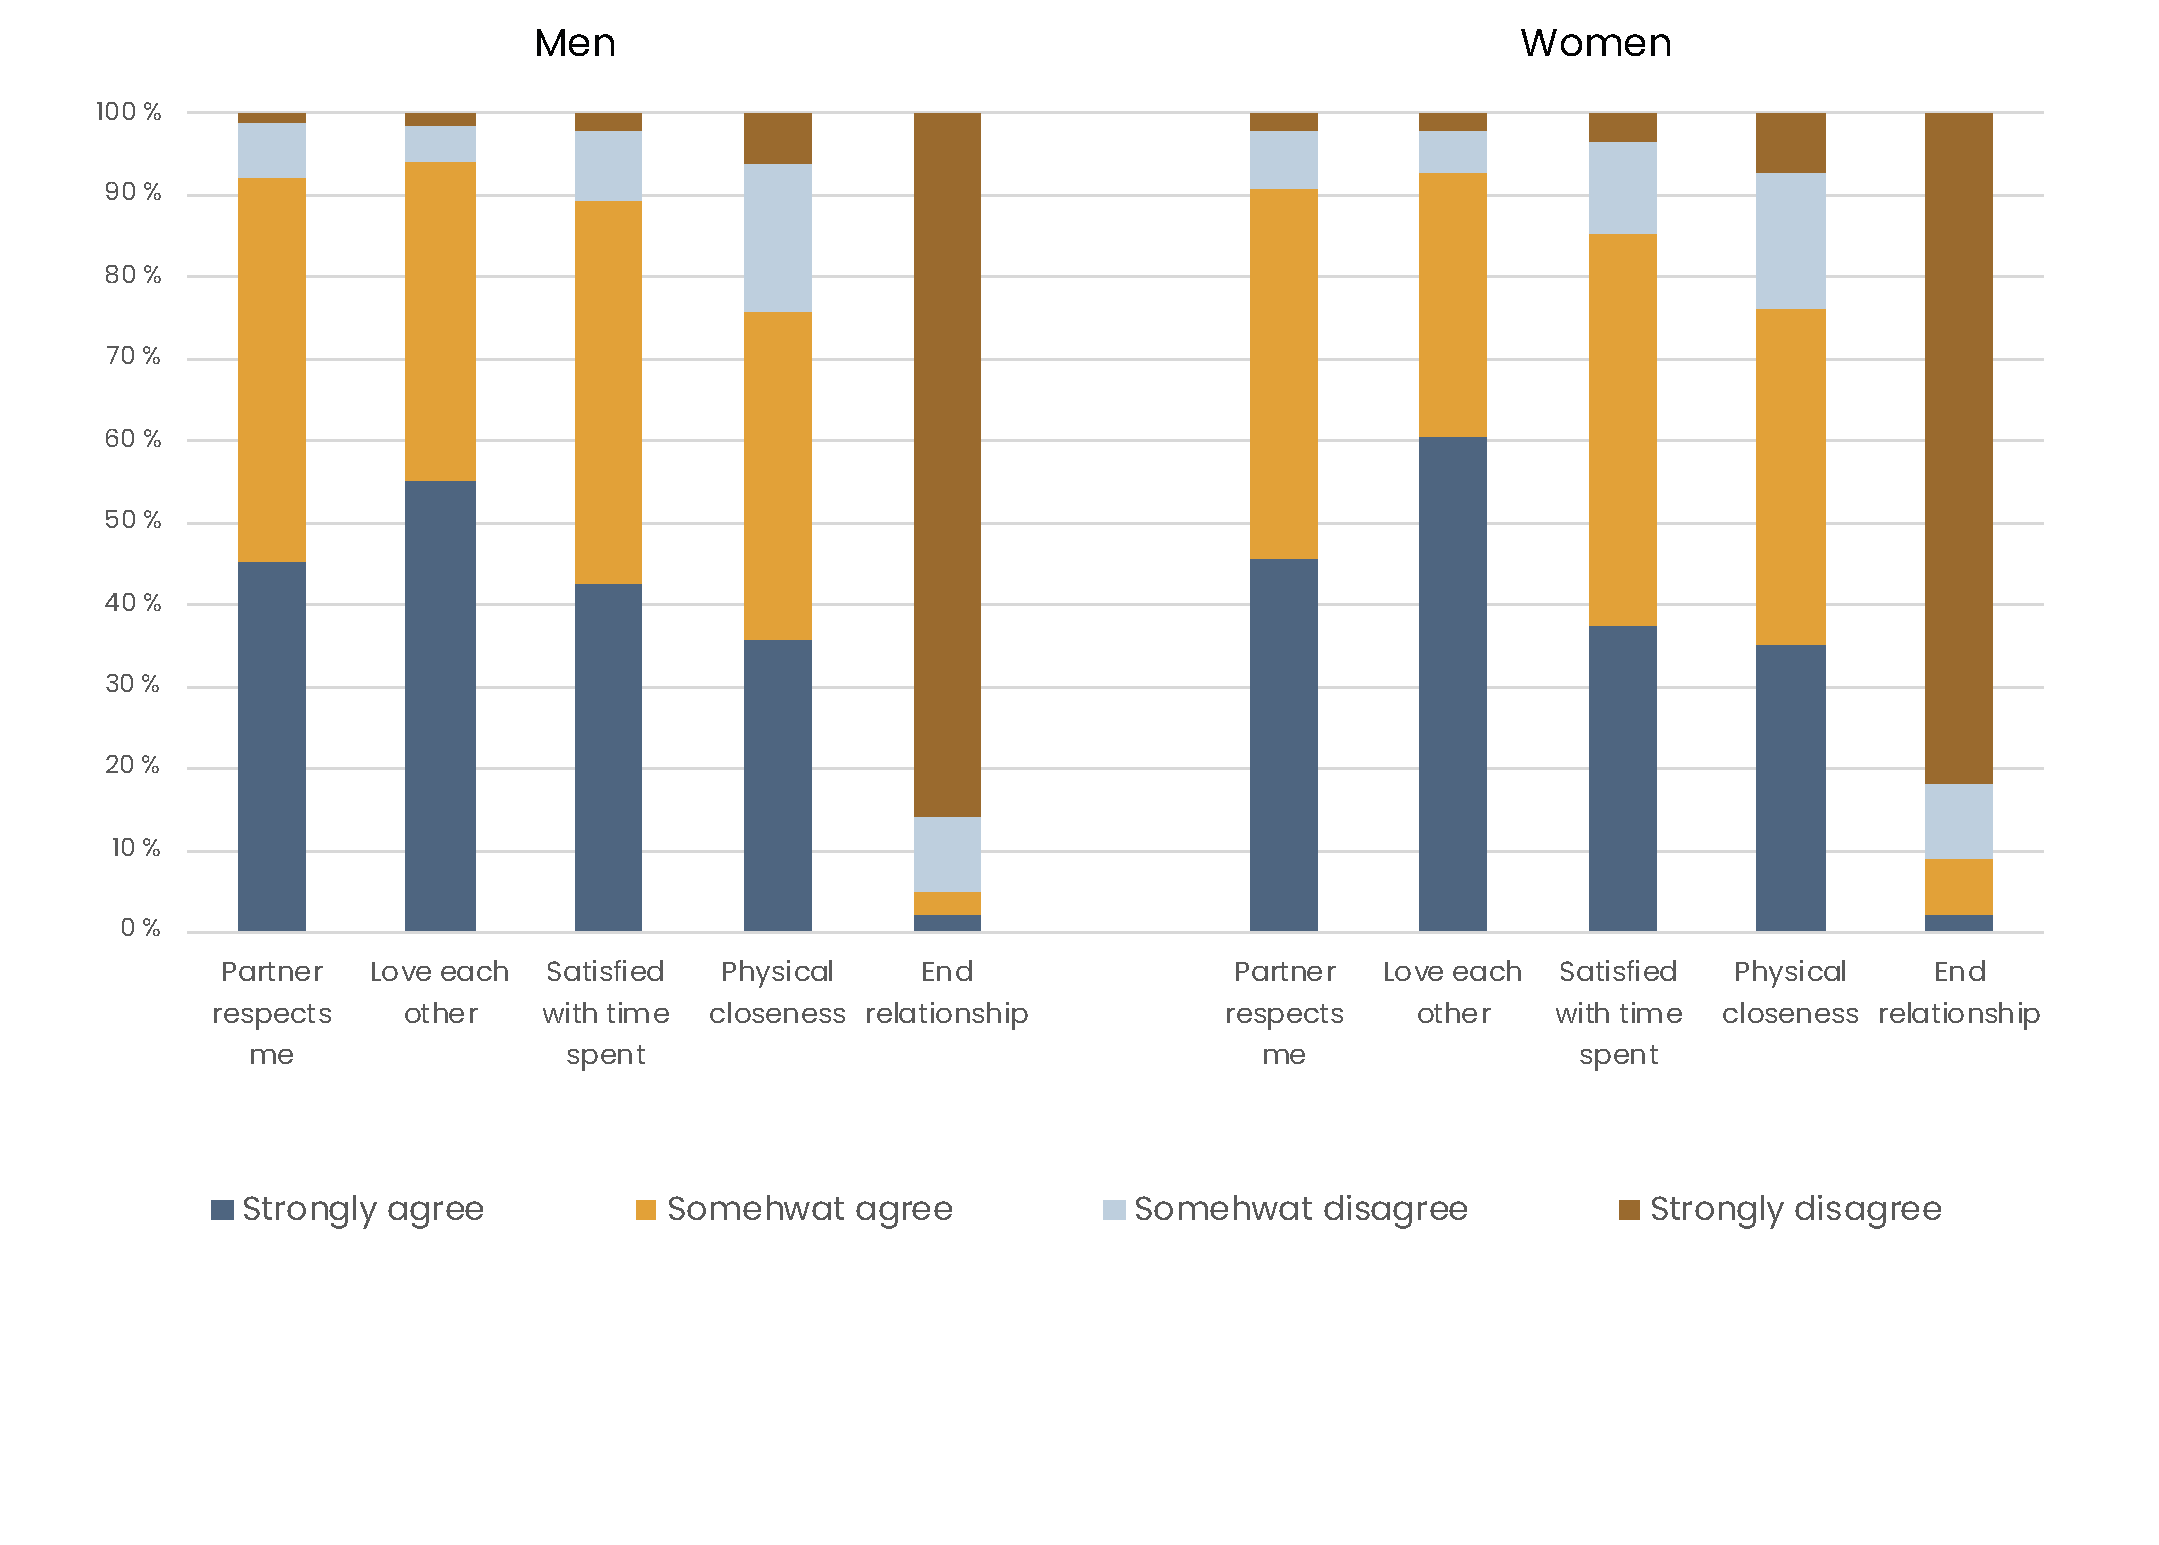 The figure depicts how Finnish men and women evaluate the quality of their relationship according to five different dimensions.